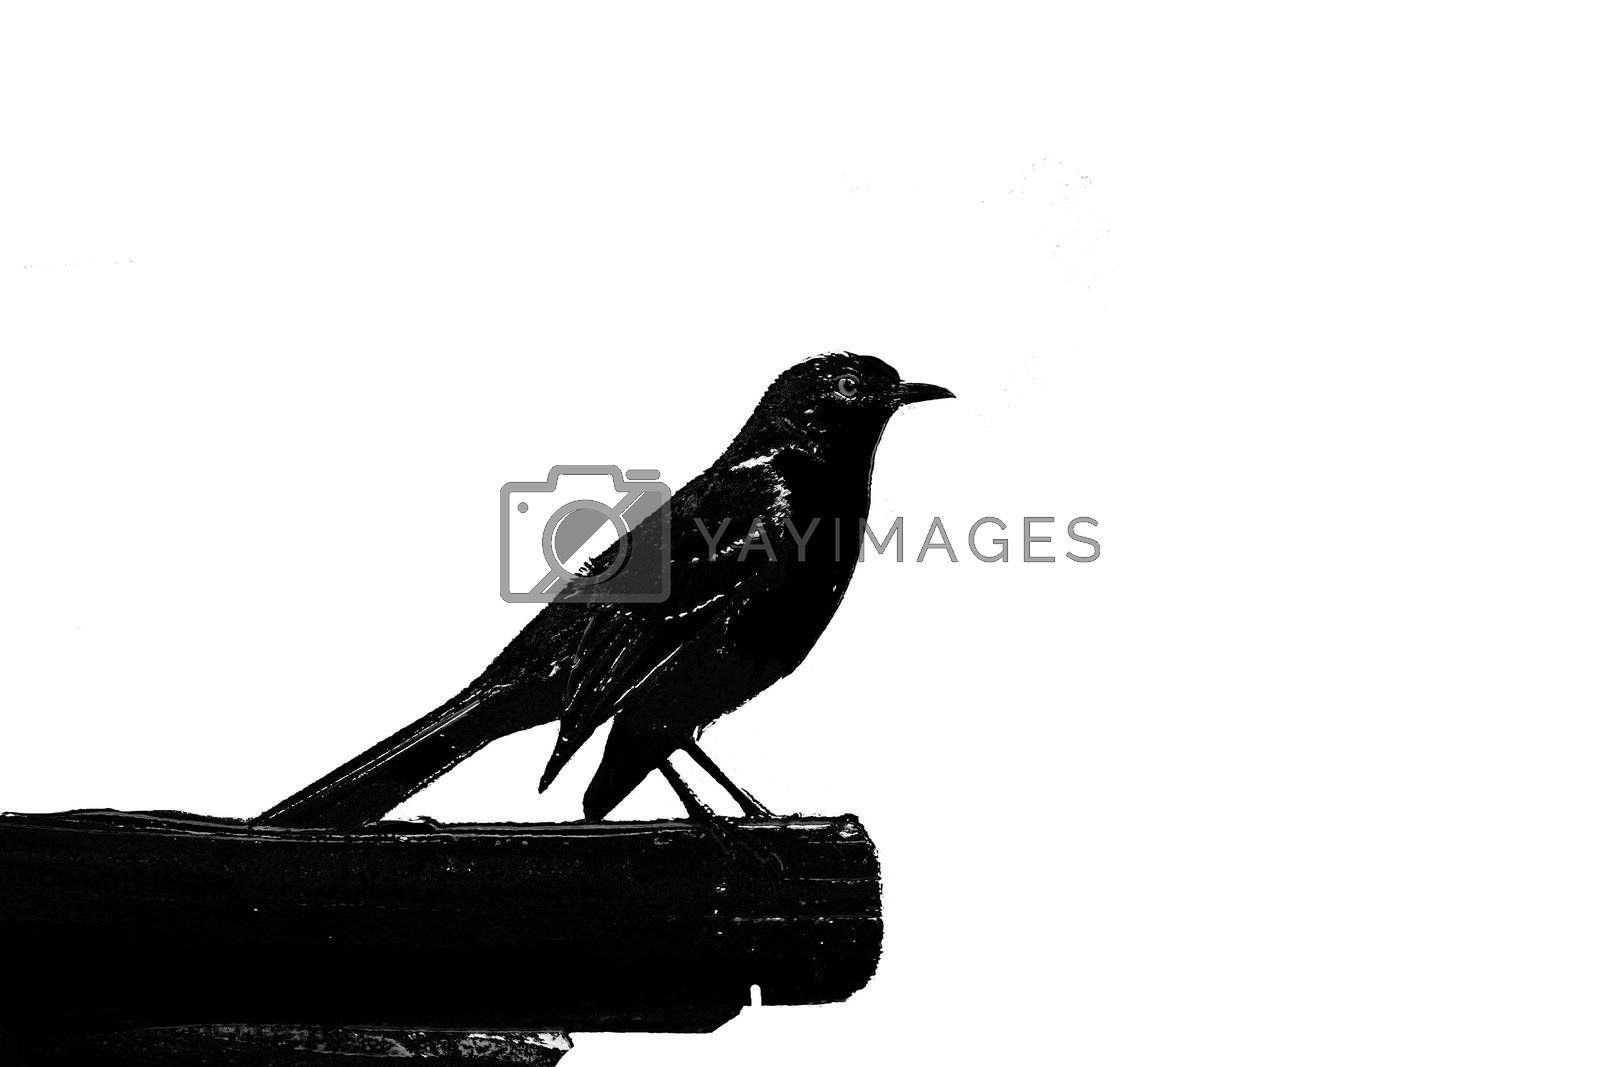 Silhouette of a finch perched on a rafter